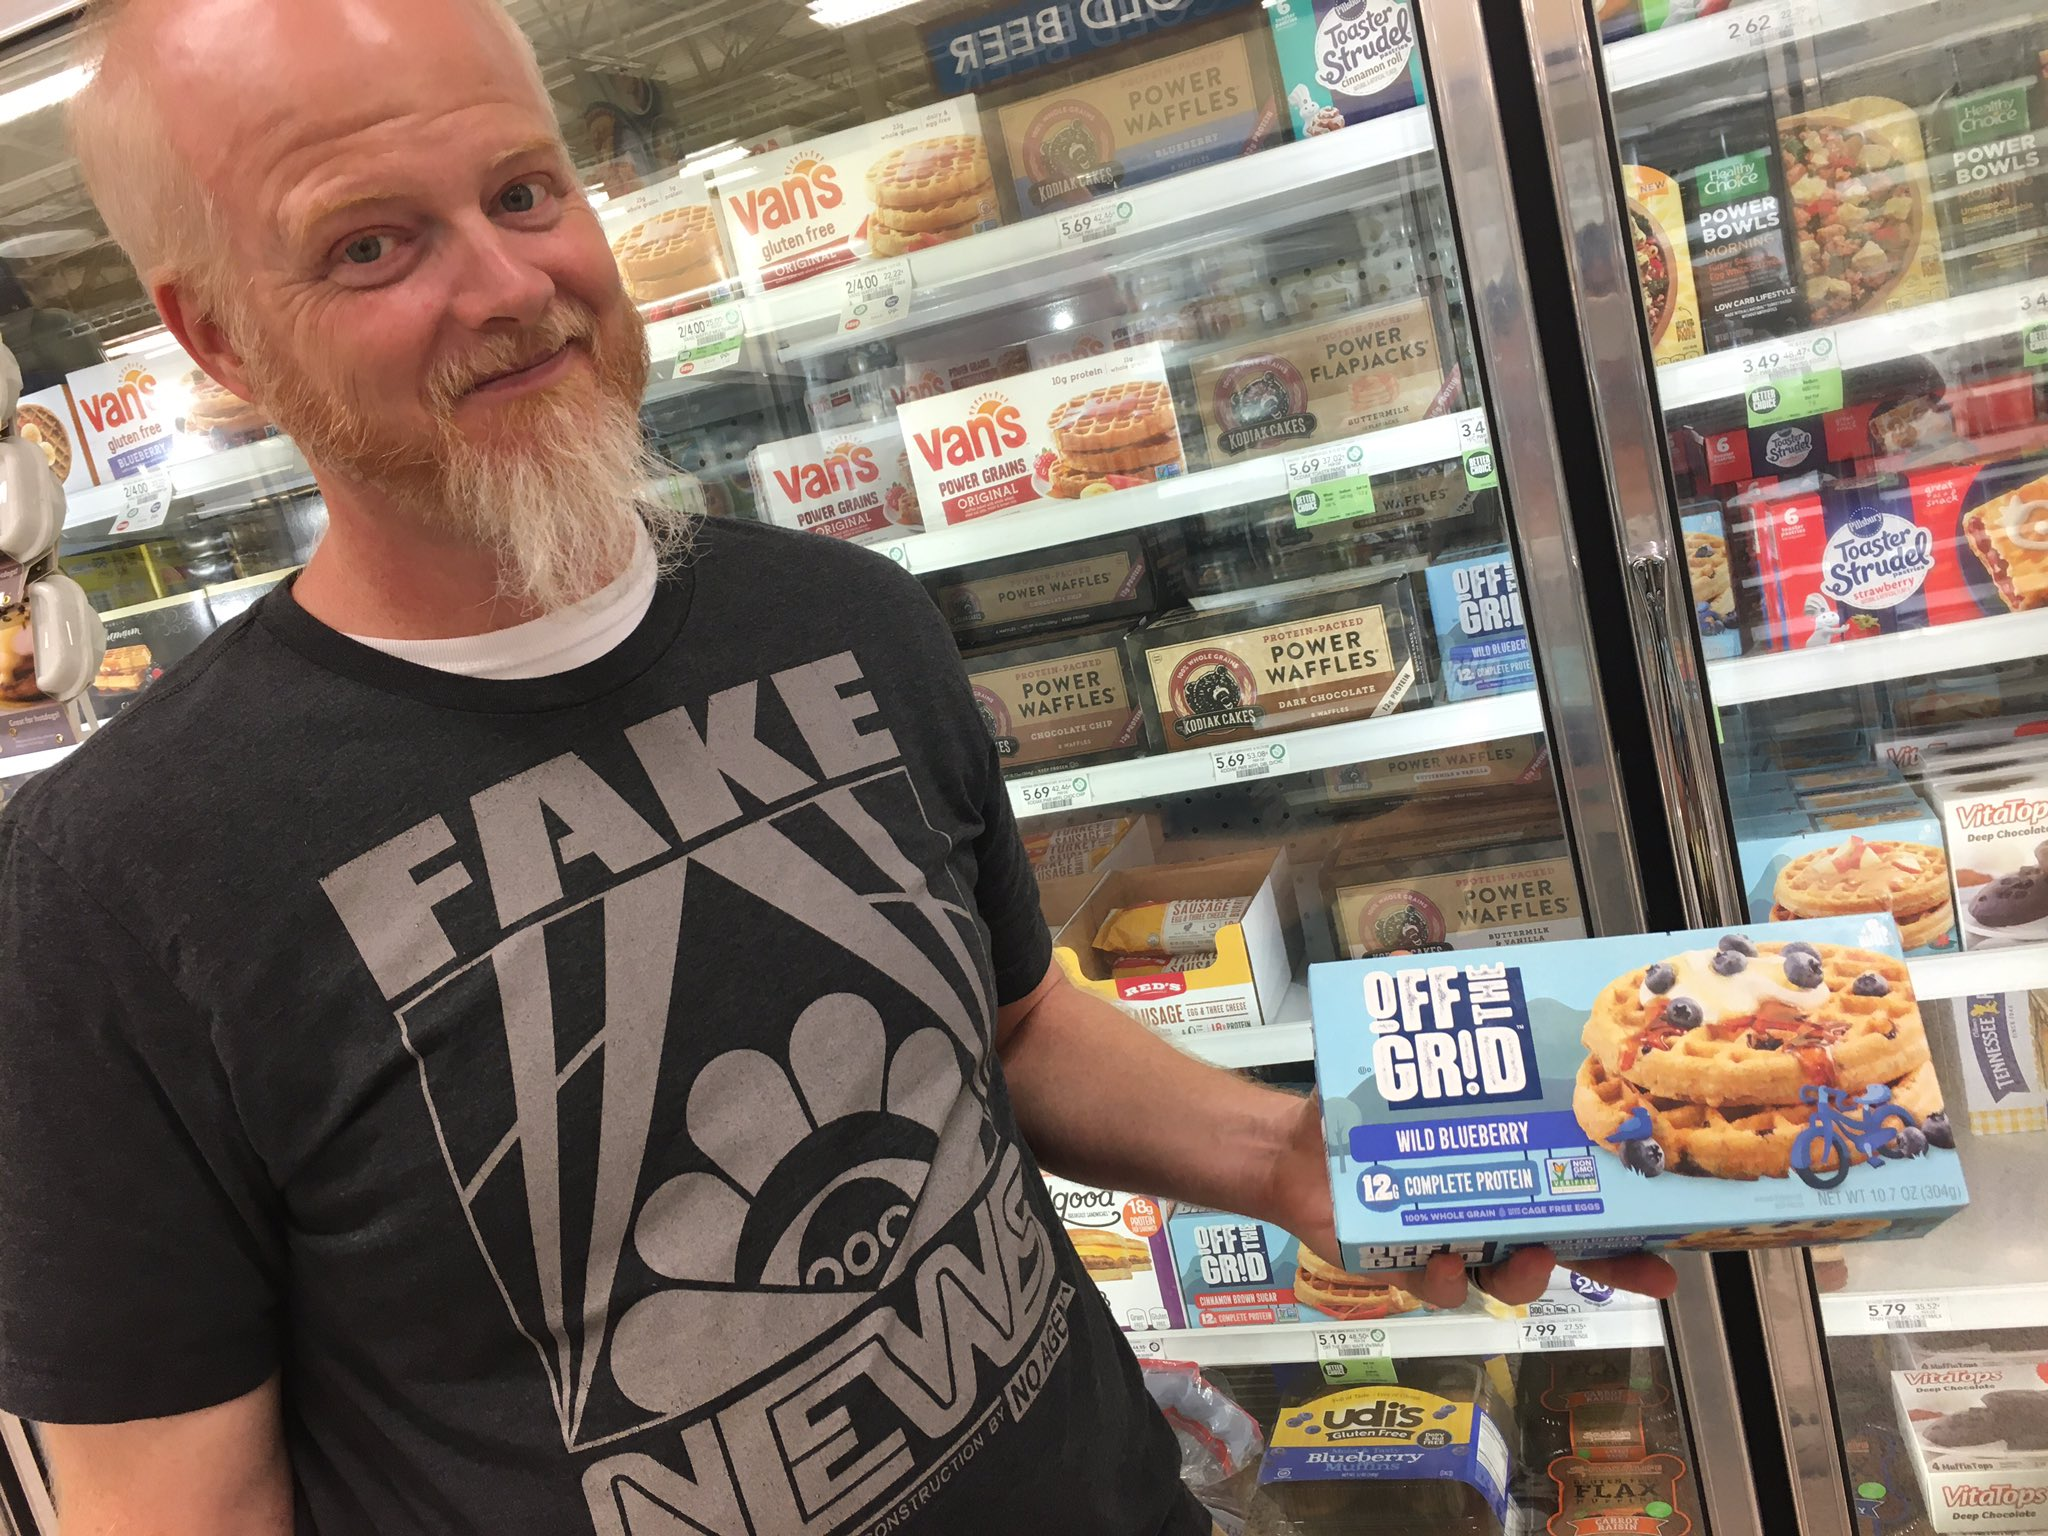 #FakeNews dude-named-Ben at Publix wonders if we should get these #OTG waffles. #NoAgenda #ITM @adamcurry @NoAgendaShop He tried to take a picture but his iPhone 5s died because he had too many tracking apps on it. https://t.co/vmk3H4mpXN